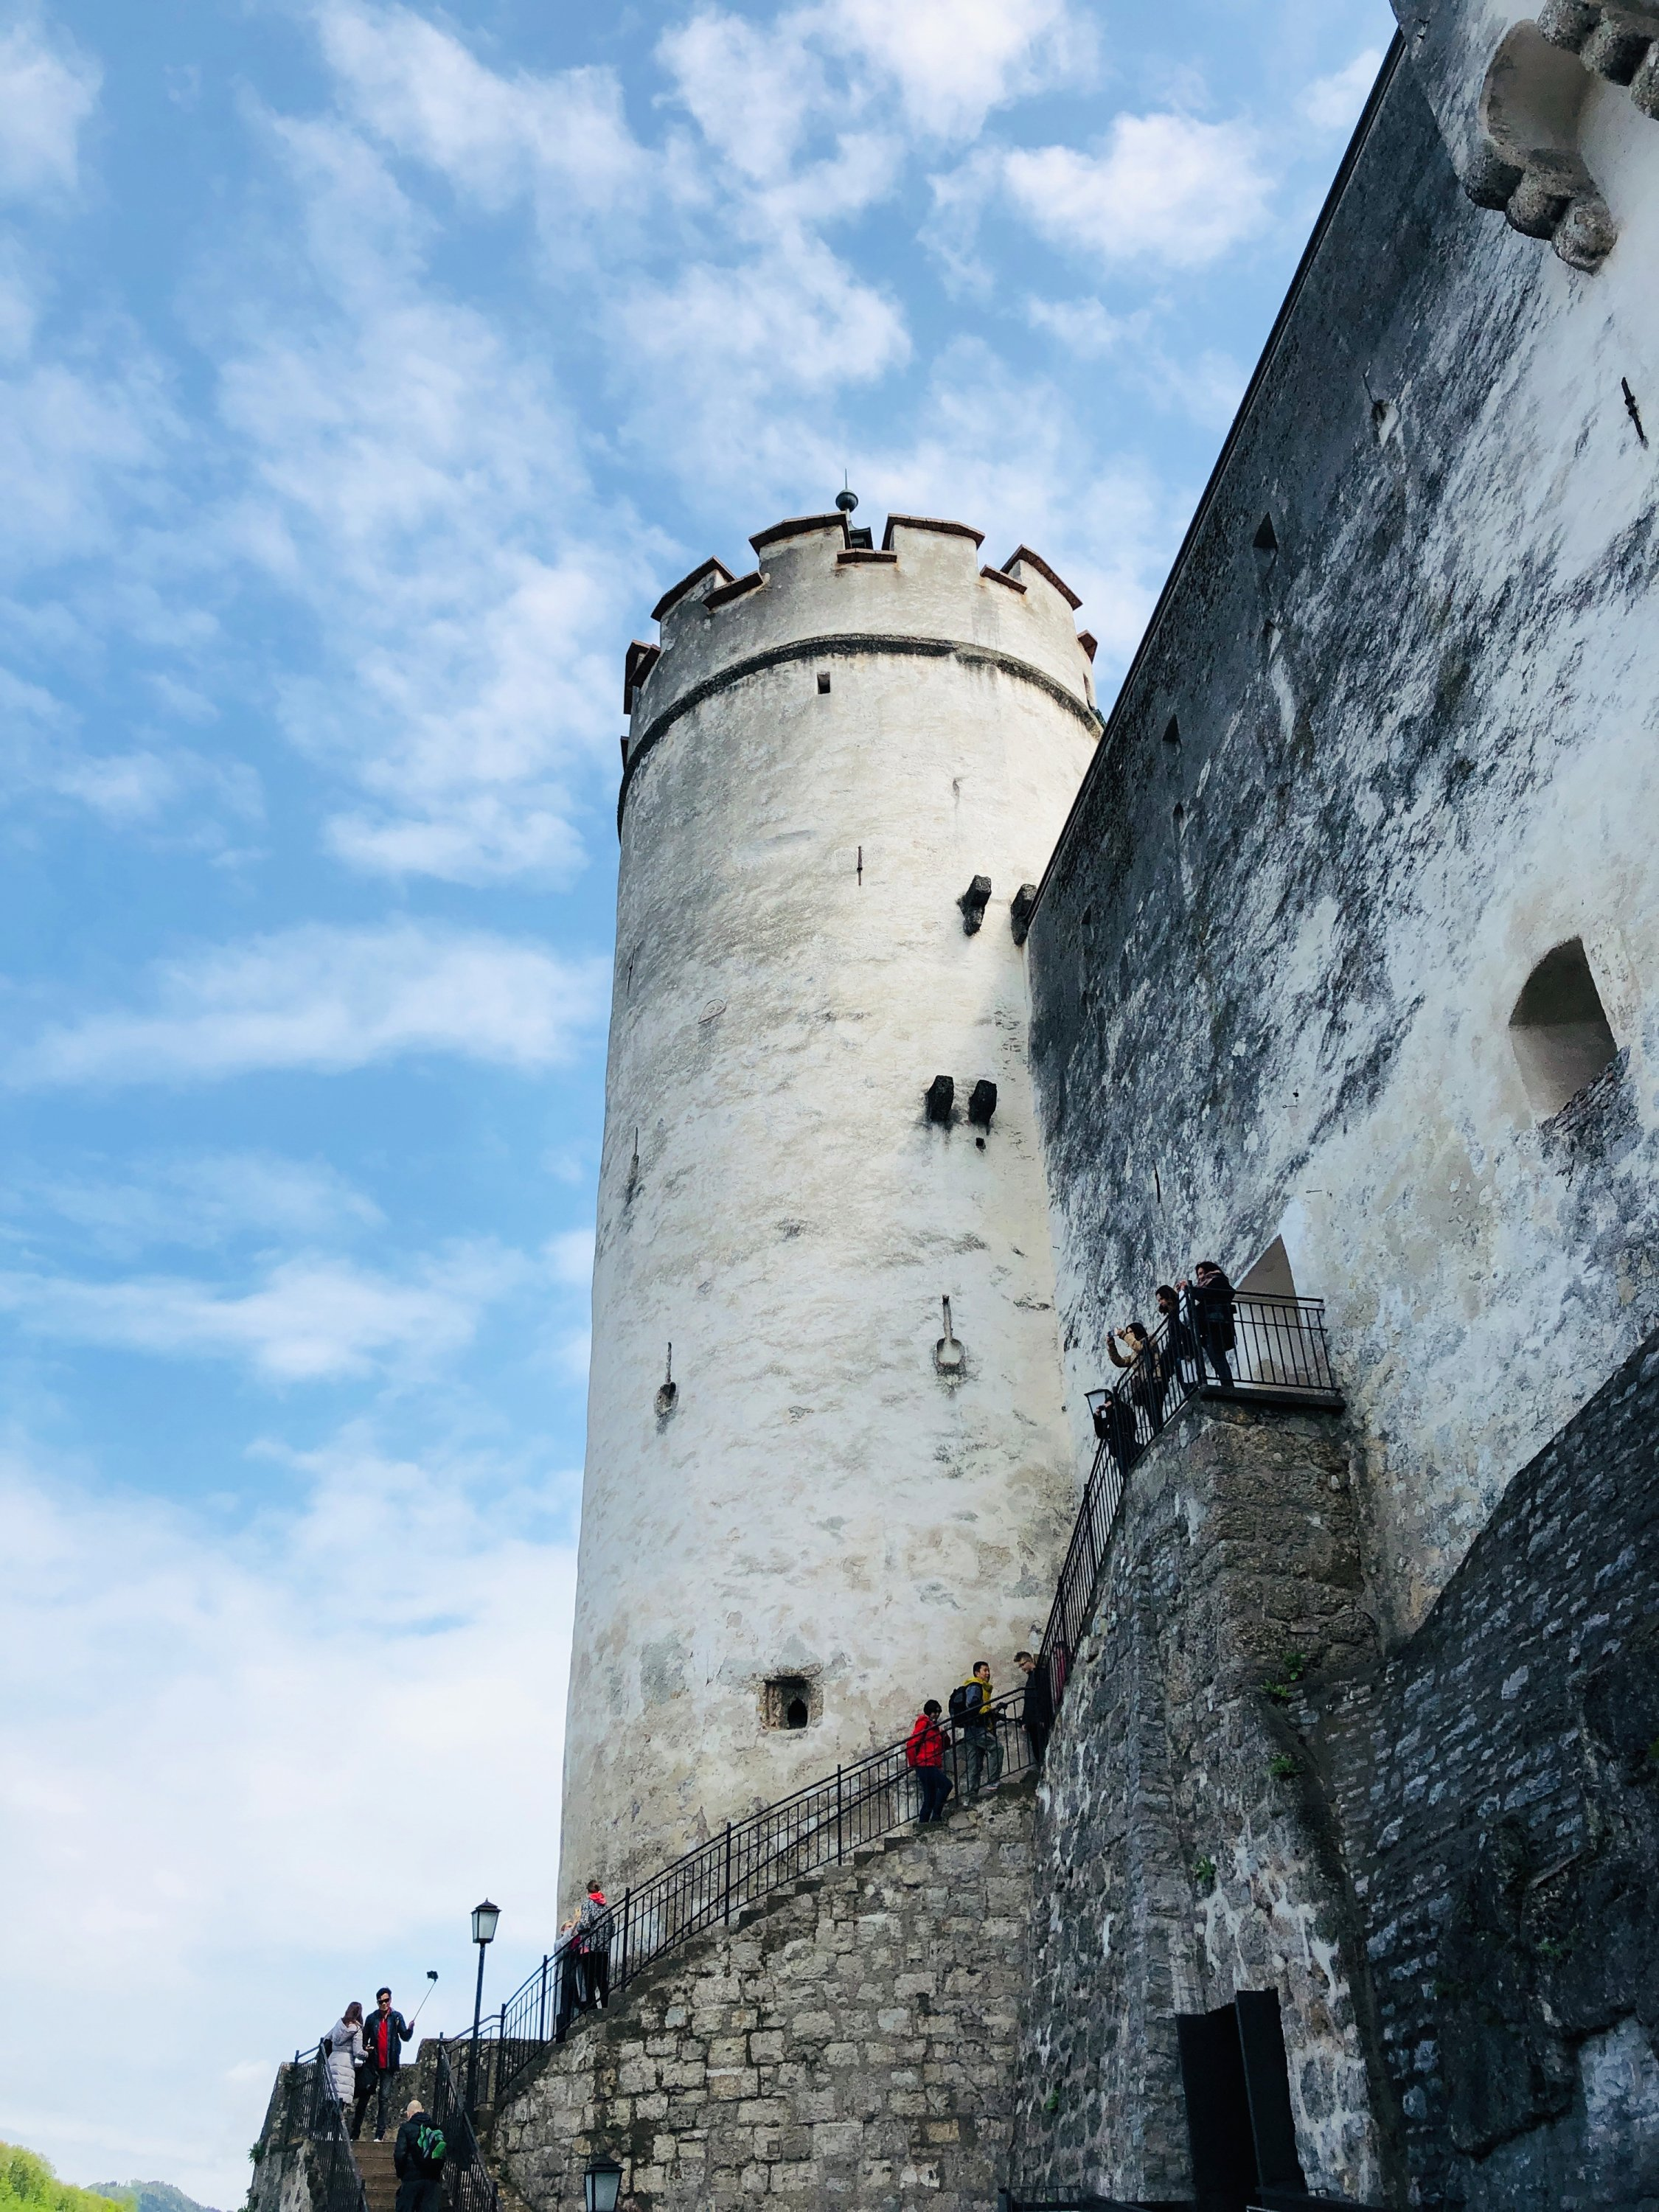 The Hohensalzburg Fortress has towered above Salzburg since 1077. (Photo by Catherine Waibel via dpa)